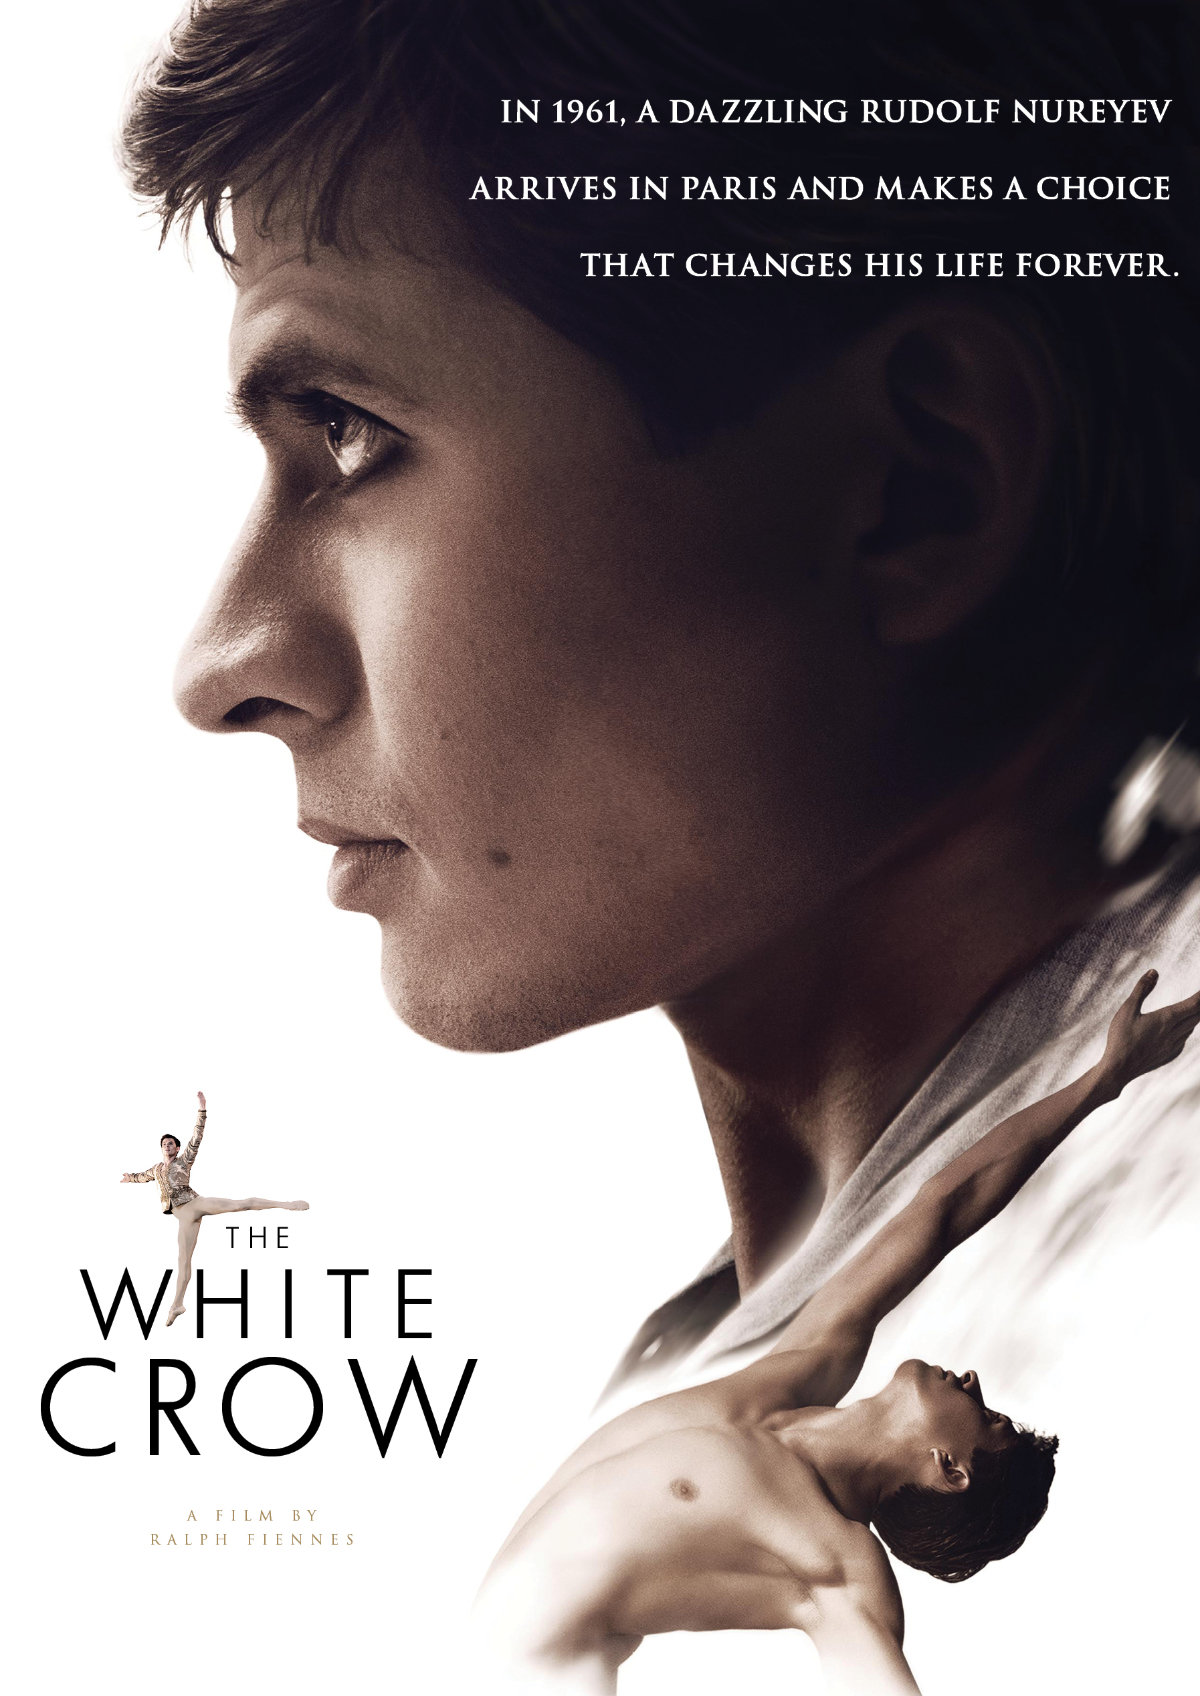 'The White Crow' movie poster